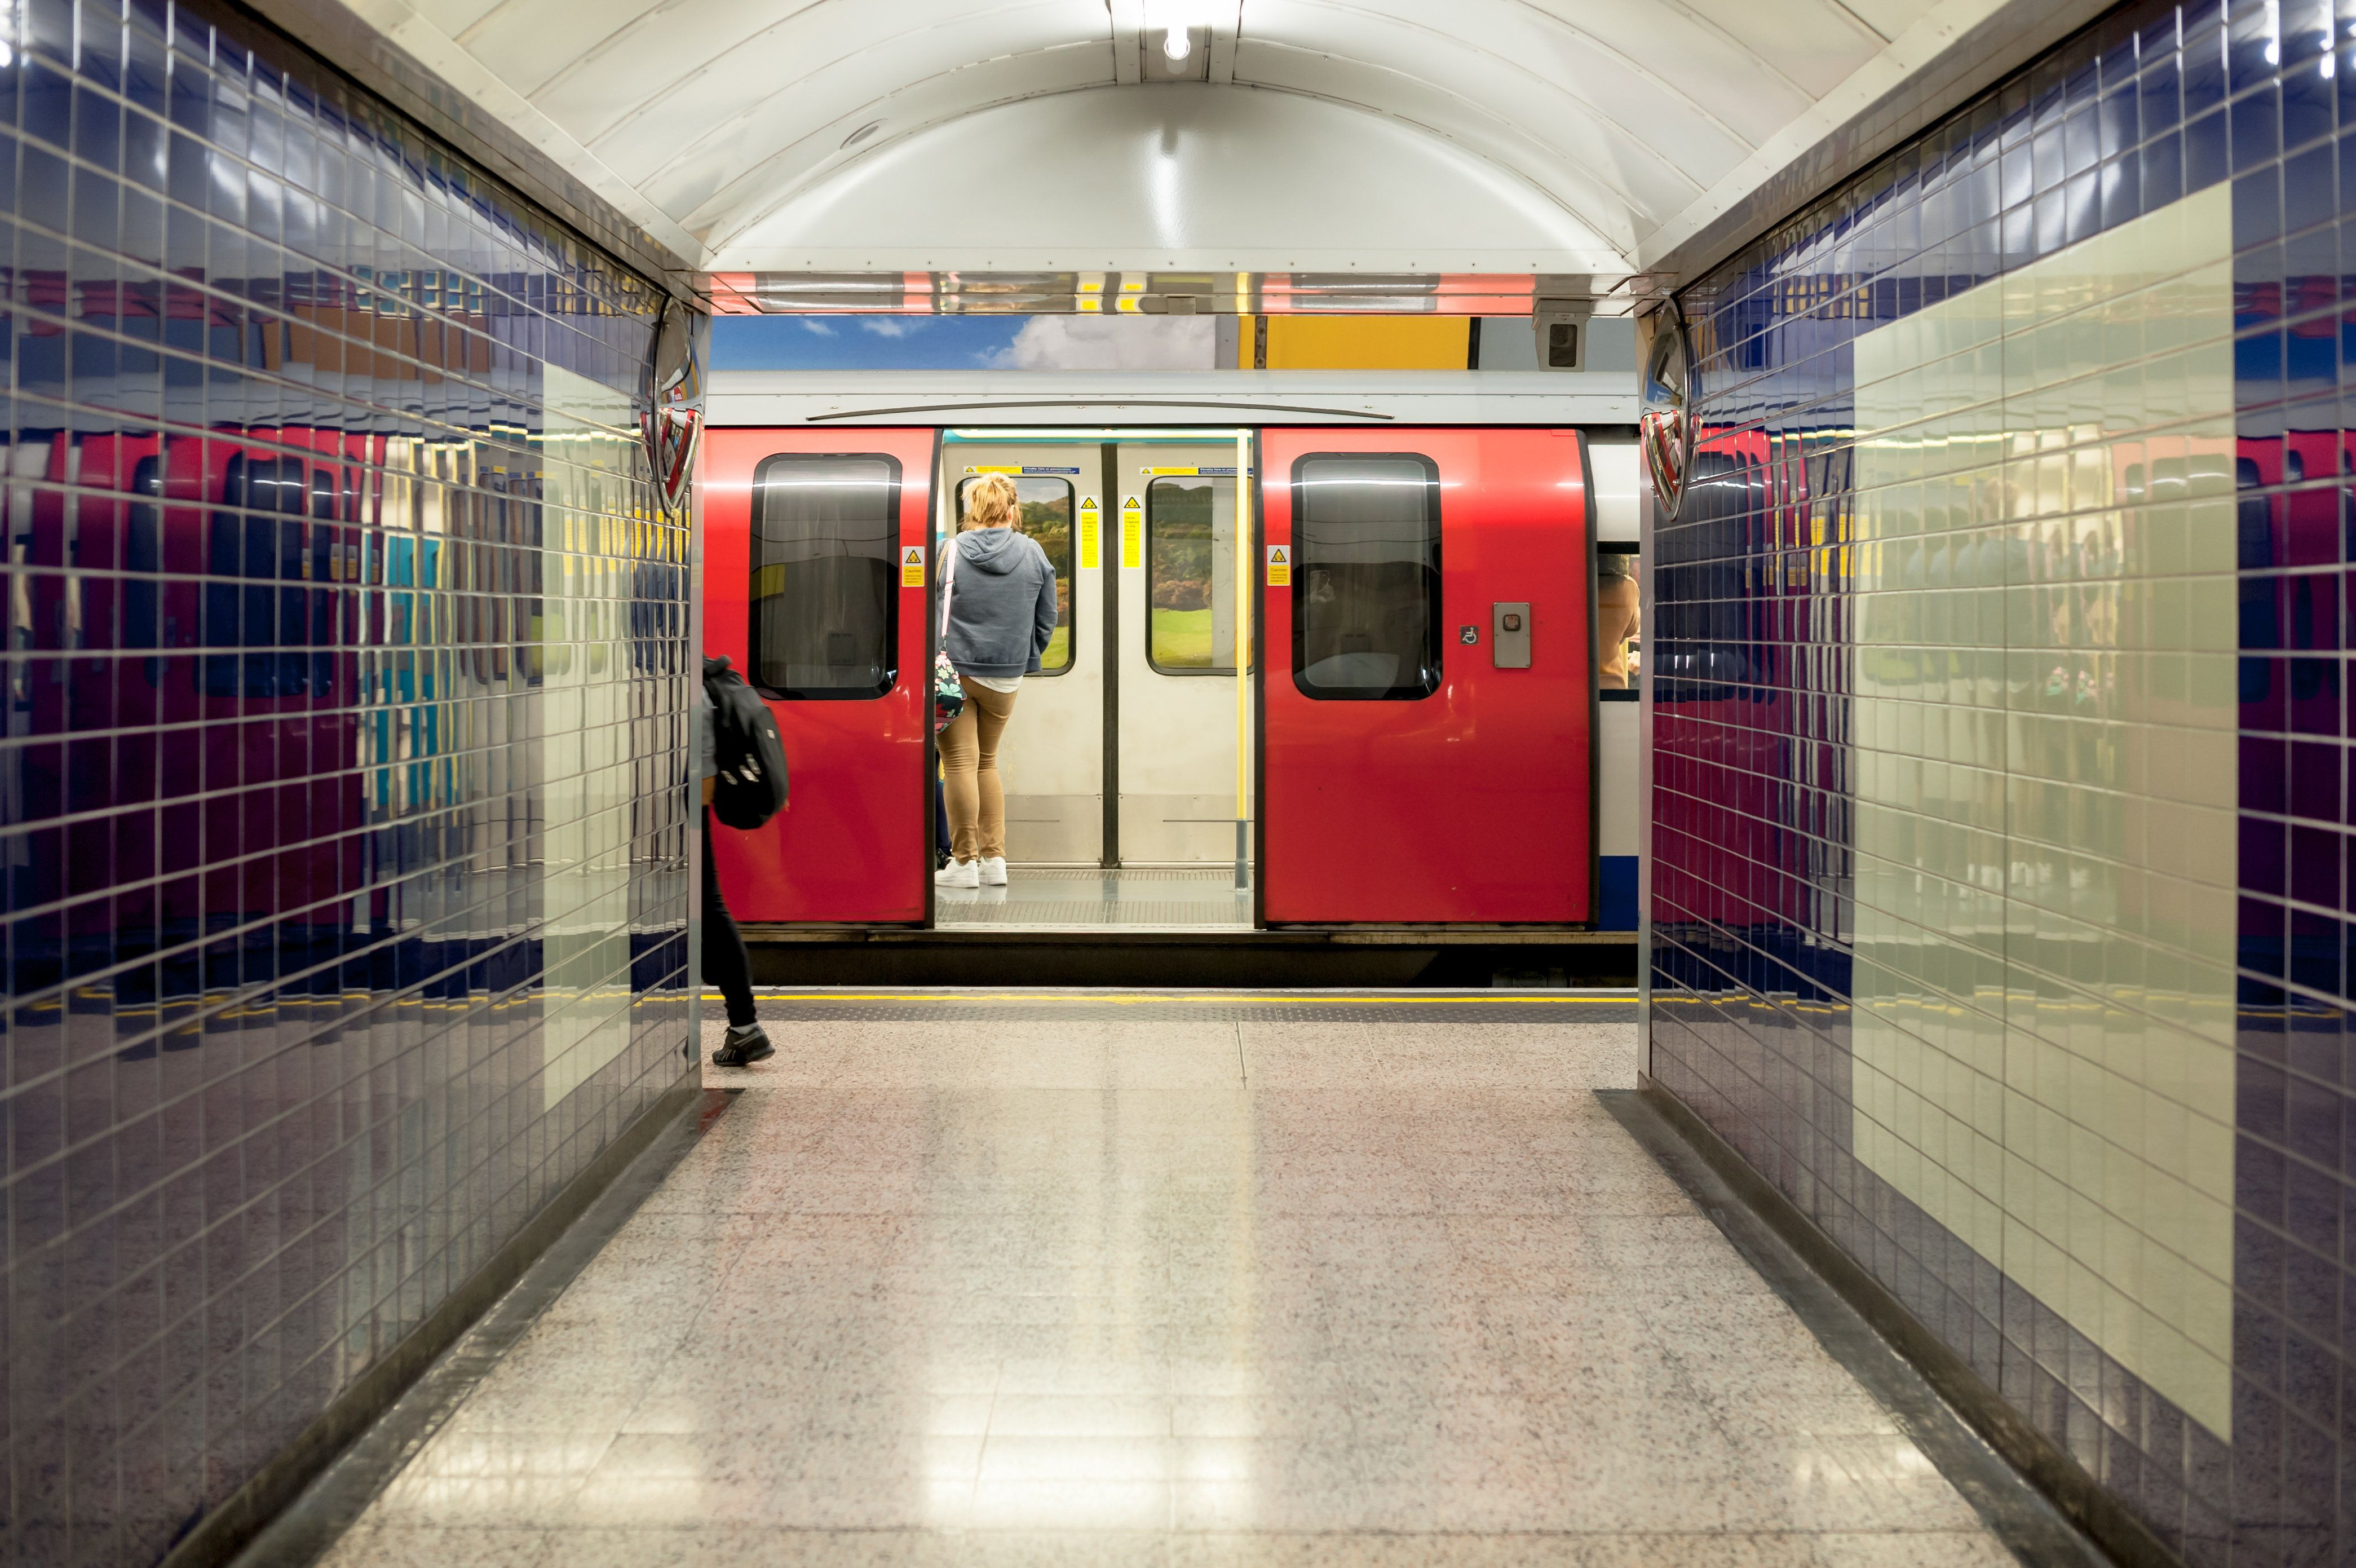 Spanish woman attacked on London tube train for not speaking English